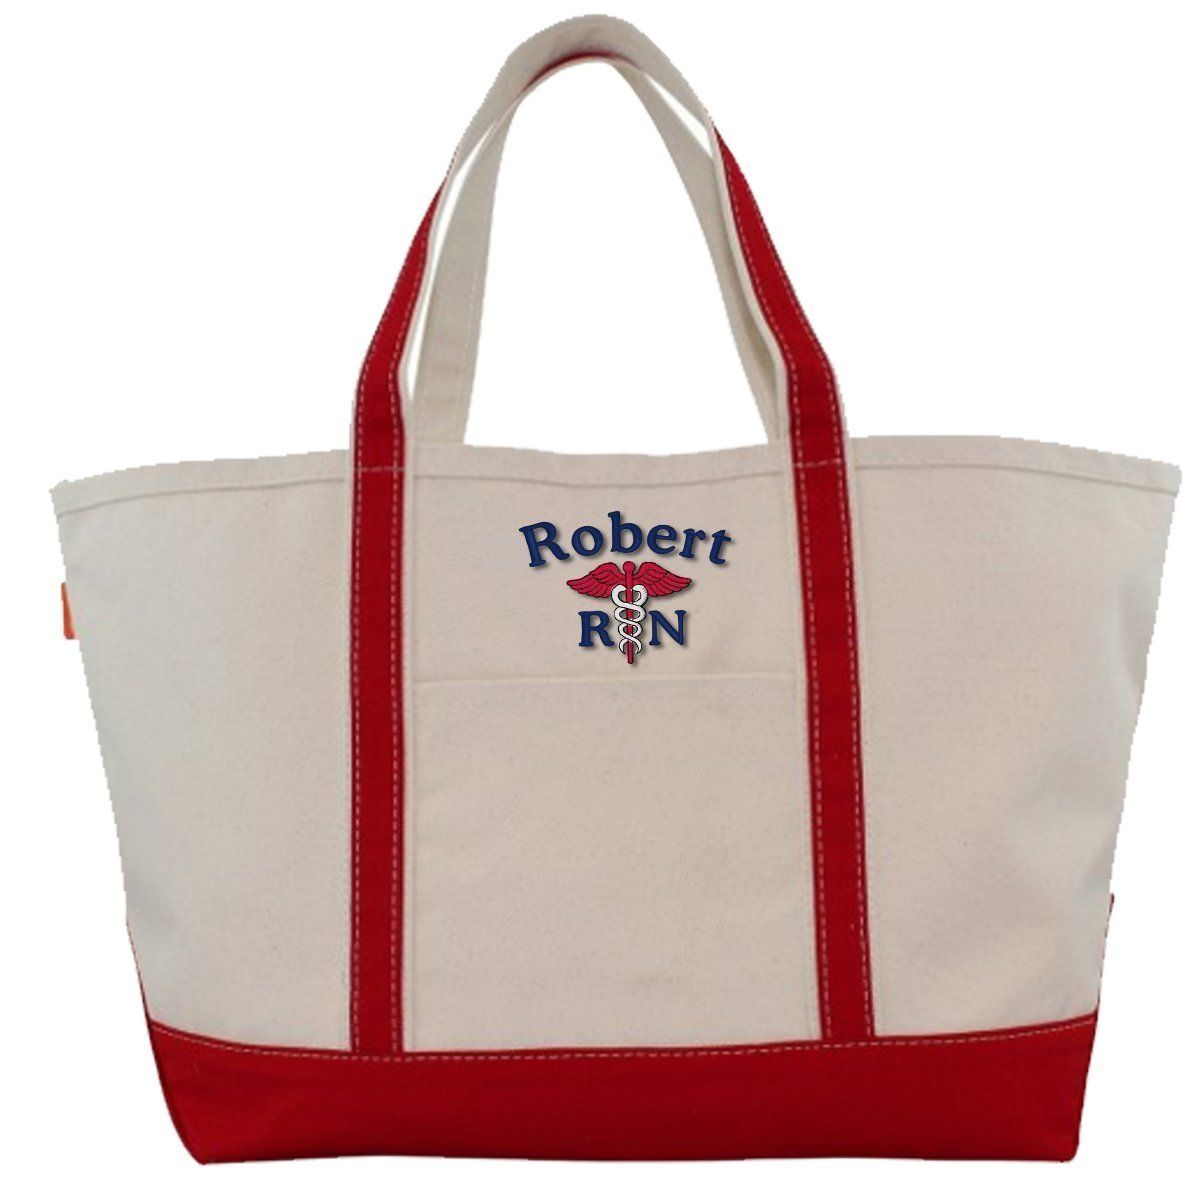 CB Station Bags Large Tote / Red 5020 | Customized Boat Tote from CB Station